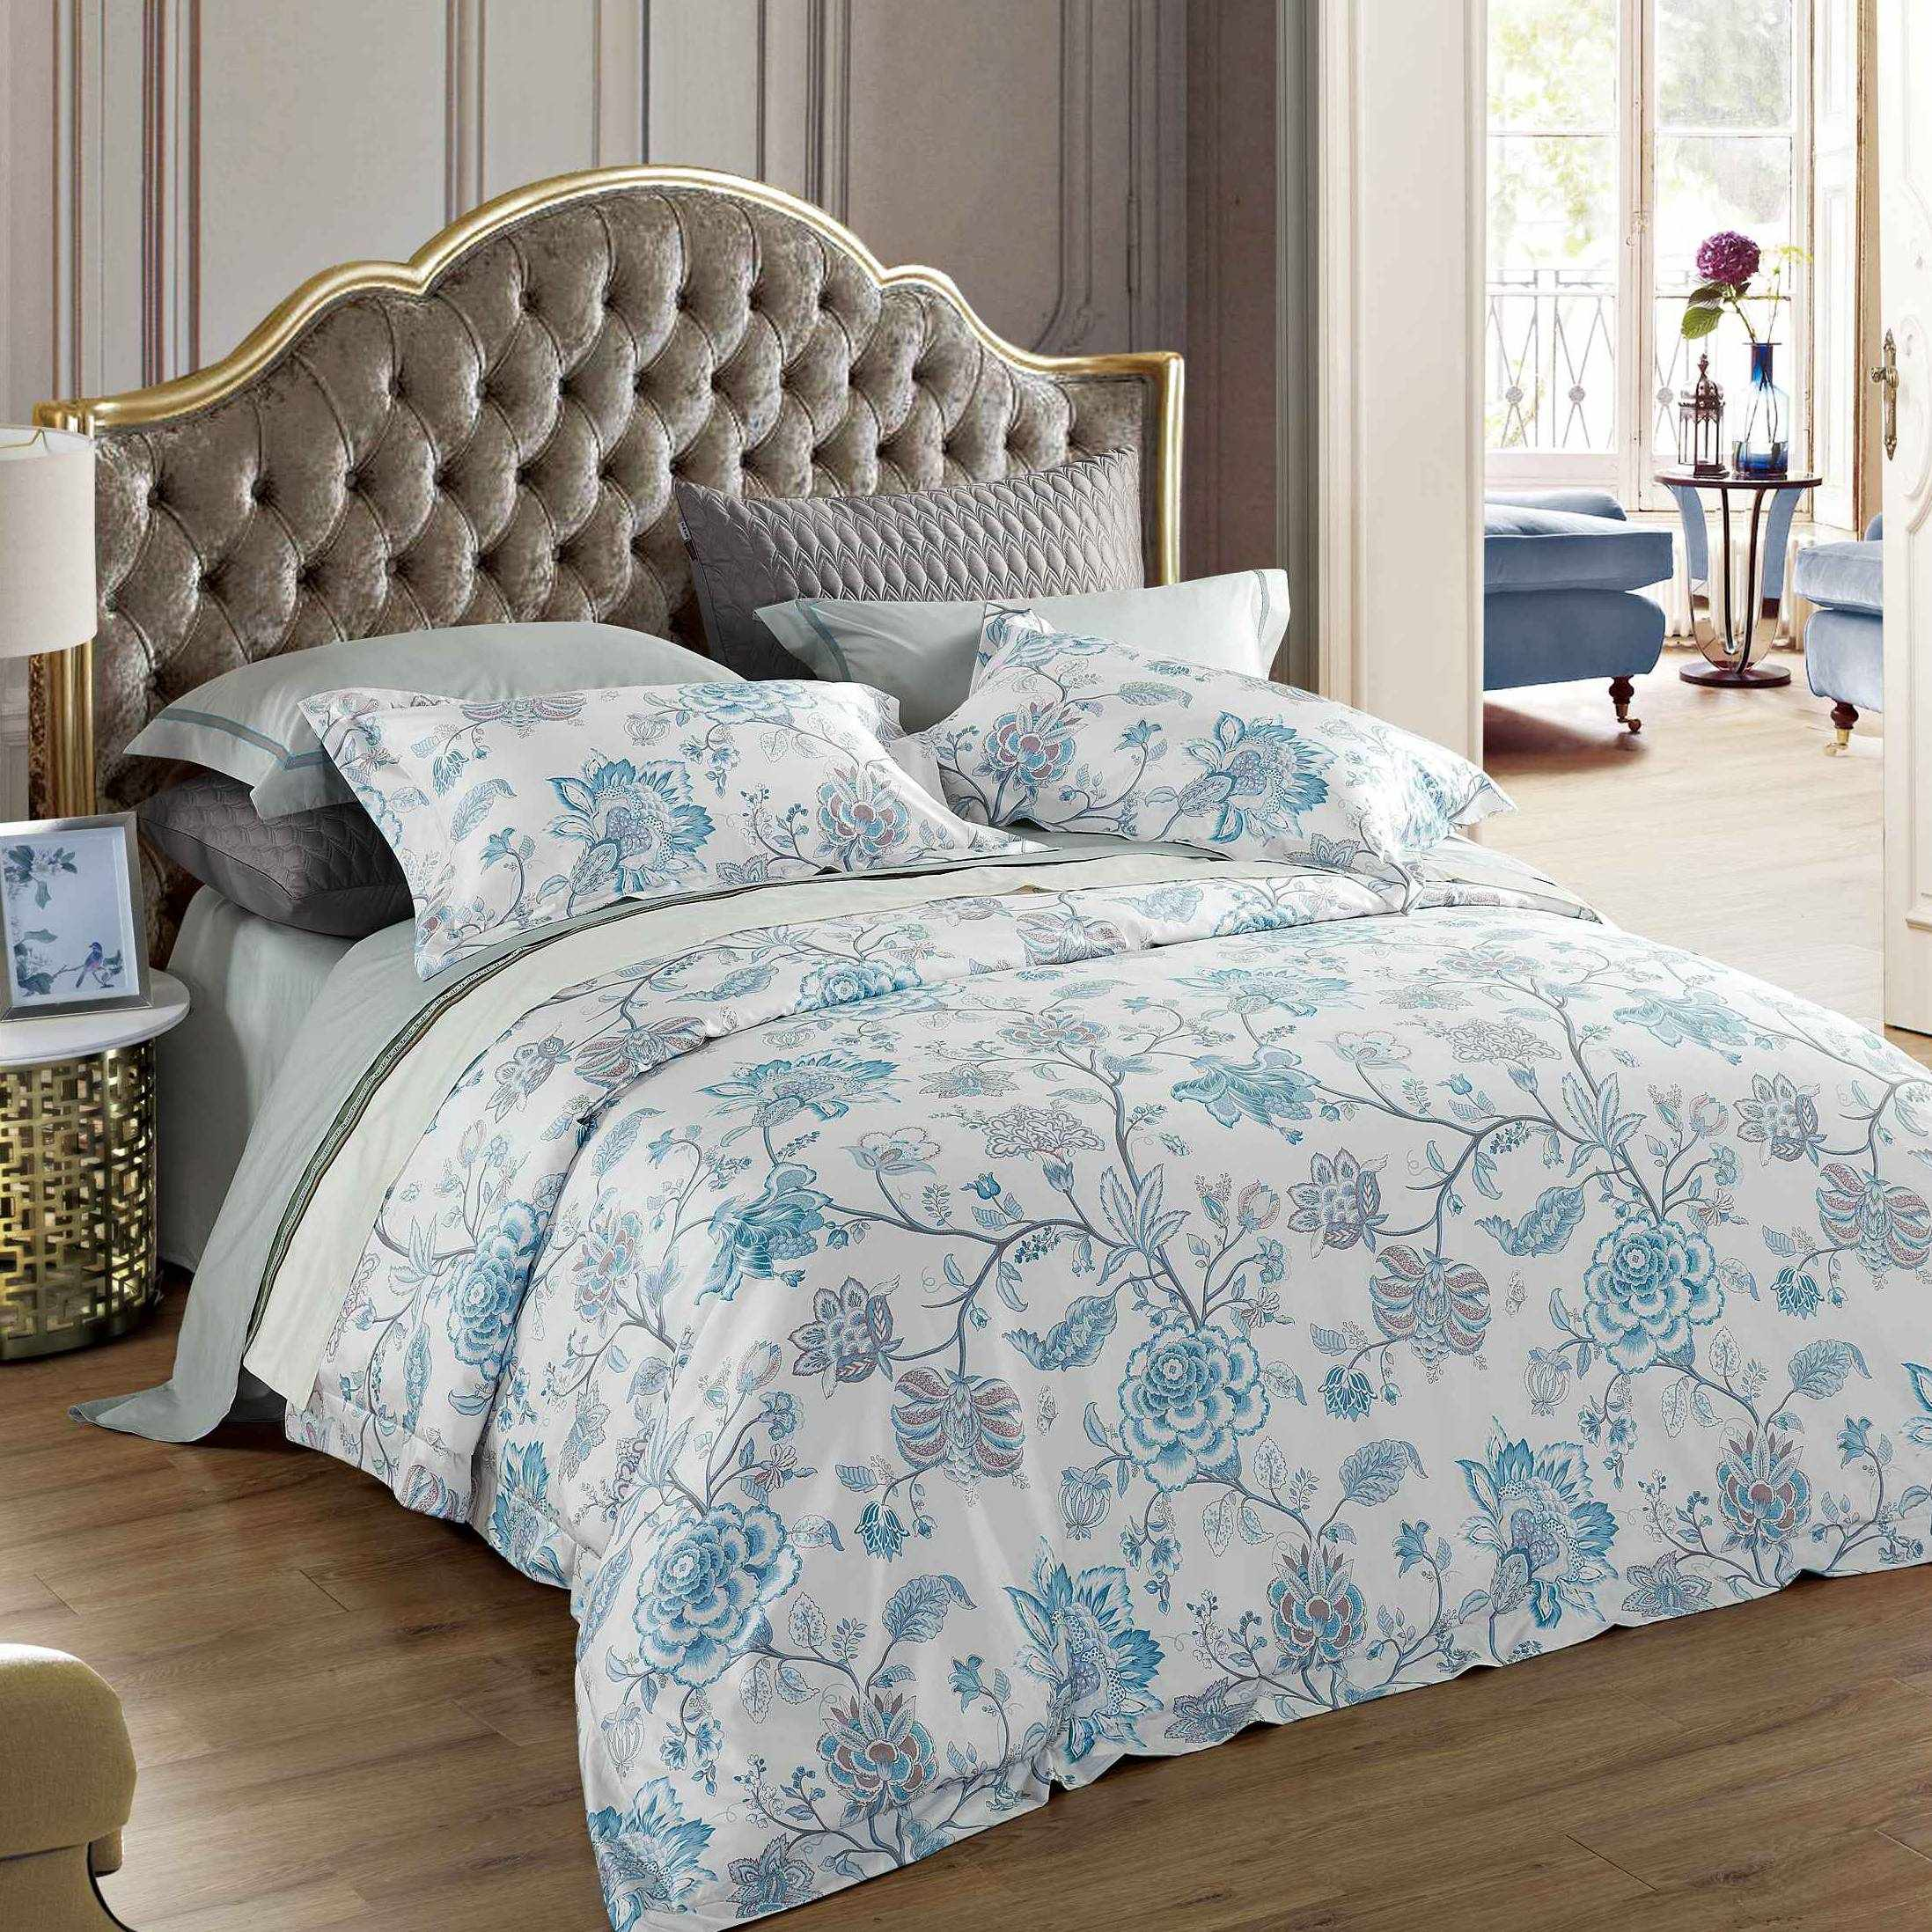 Blue Floral Pattern Printed Cotton Bedding Set 171152